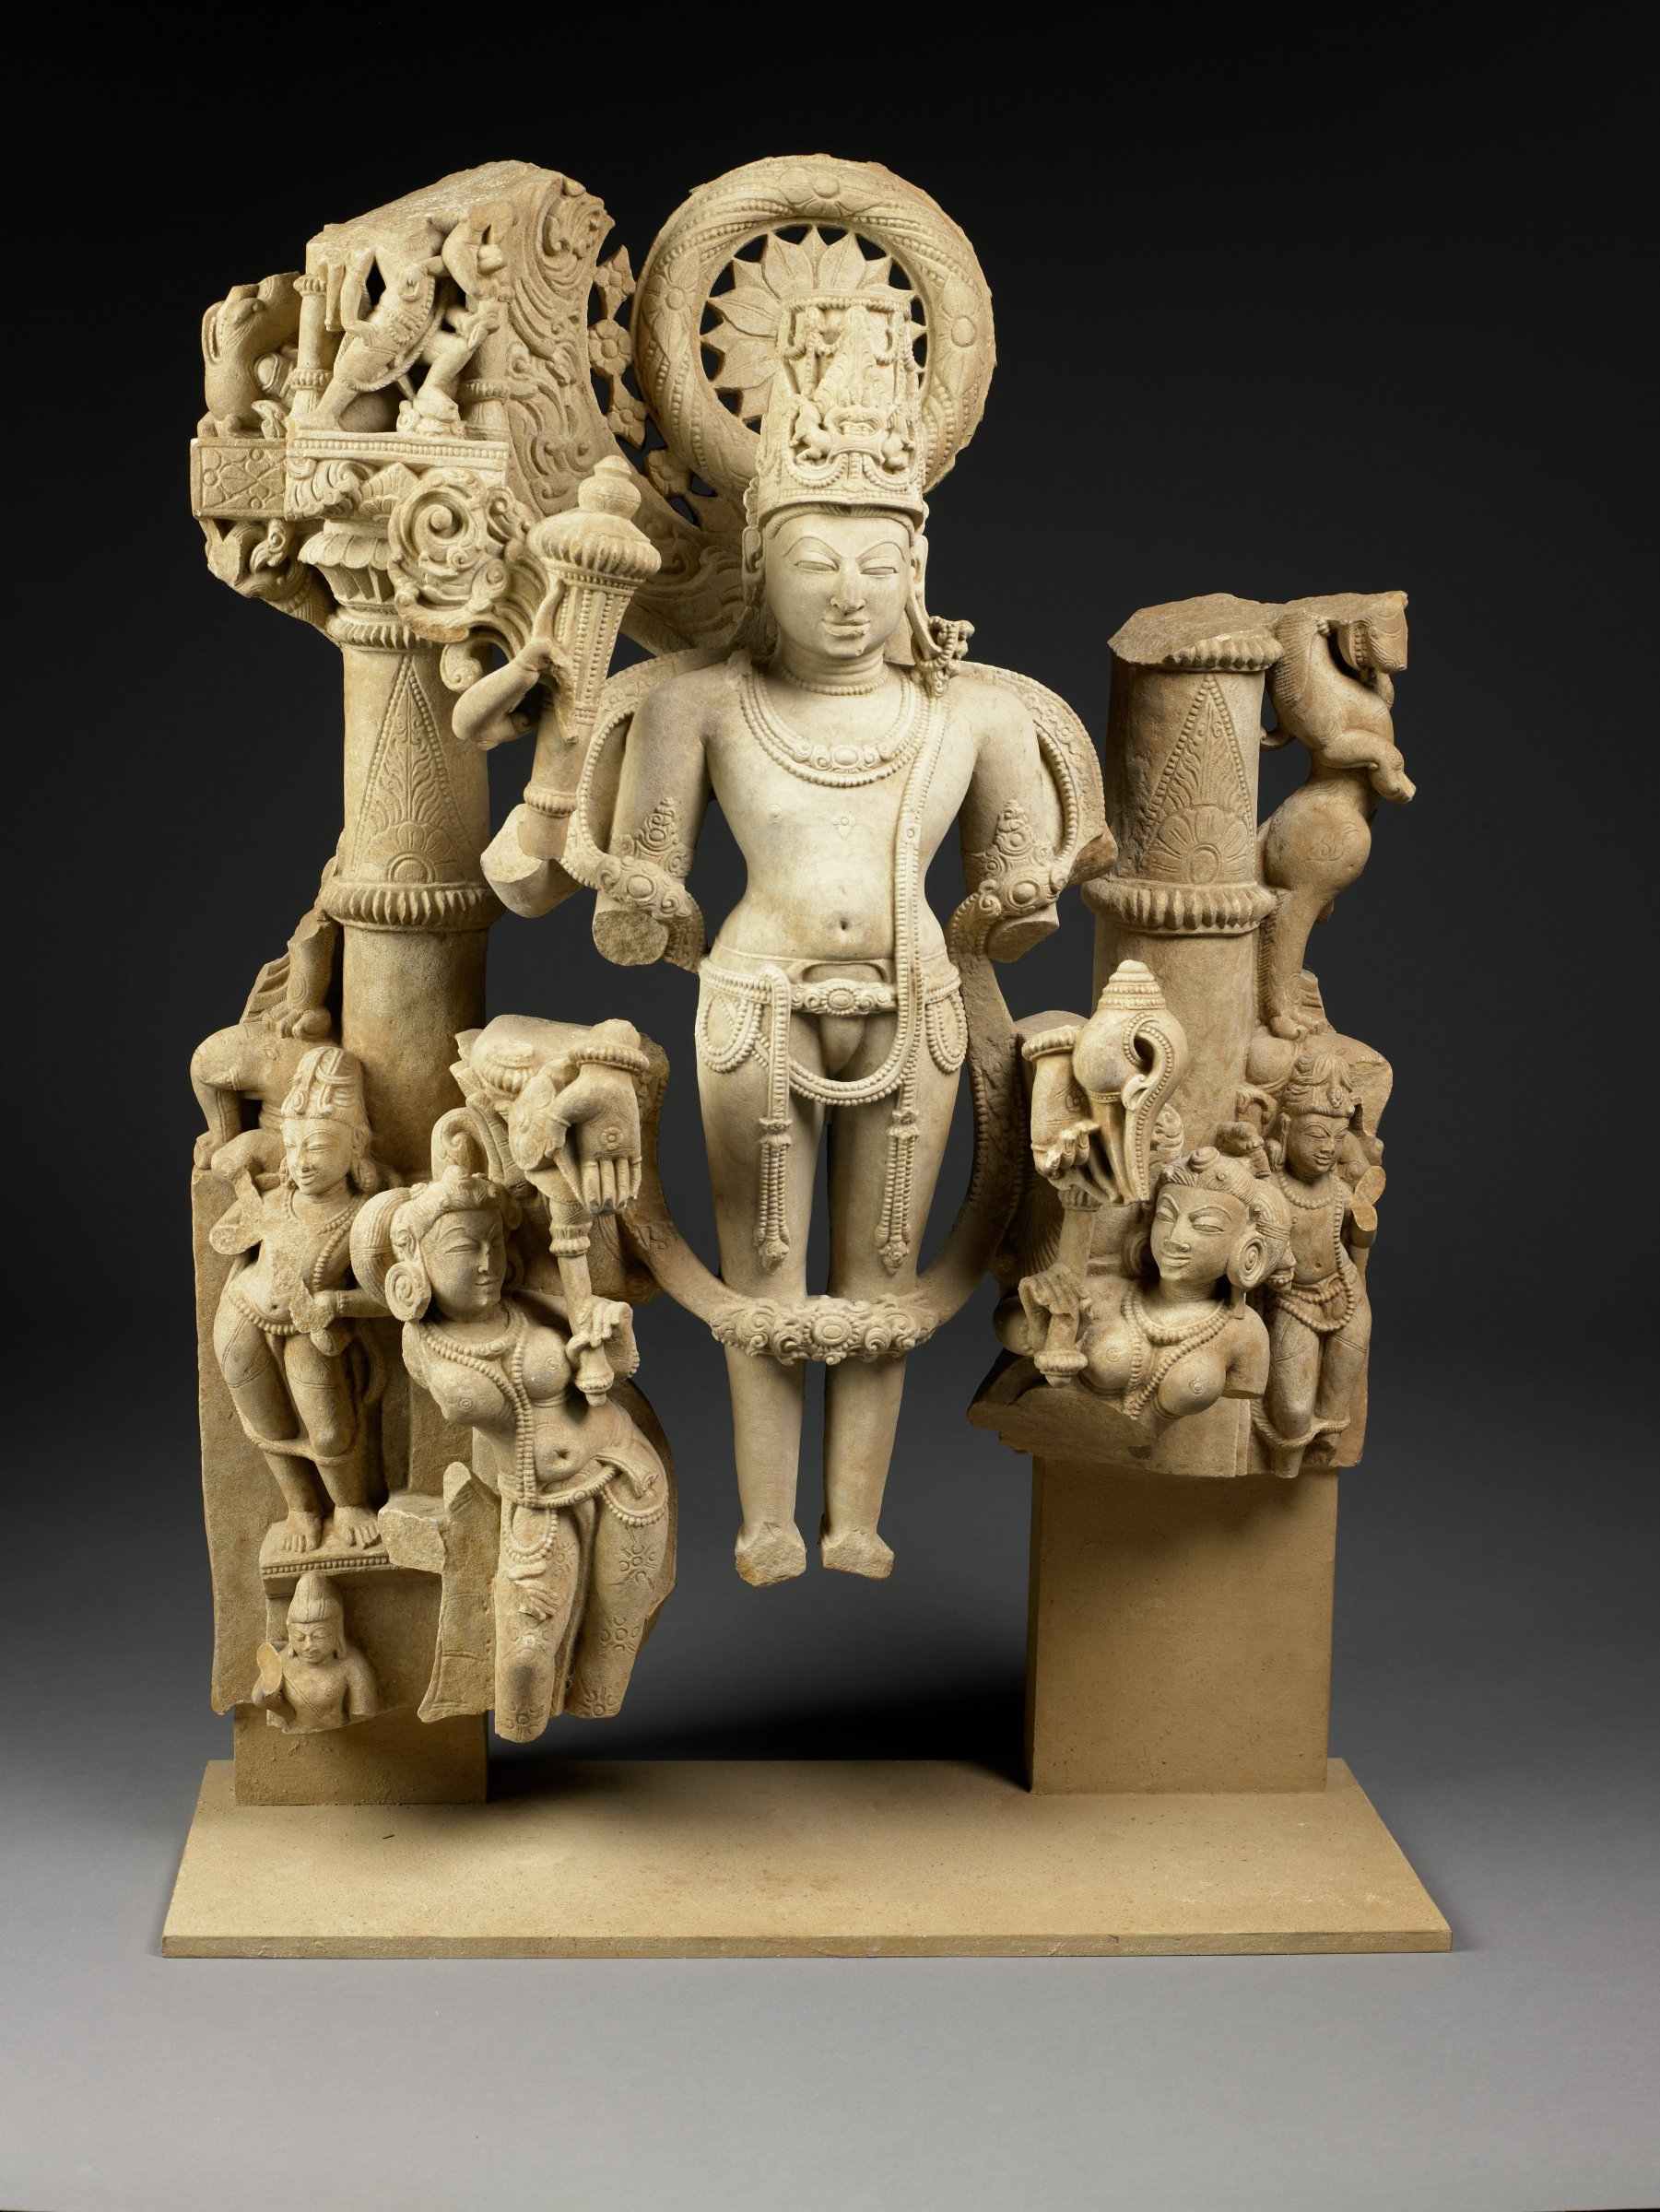 High relief sculpture depicting a four-armed iconic form of Vishnu retaining mace and conch and boon-granting gesture; figure wears highly decorative conical crown, jewelry and floral garland, lotus halo framing head. Two female attendents at legs,